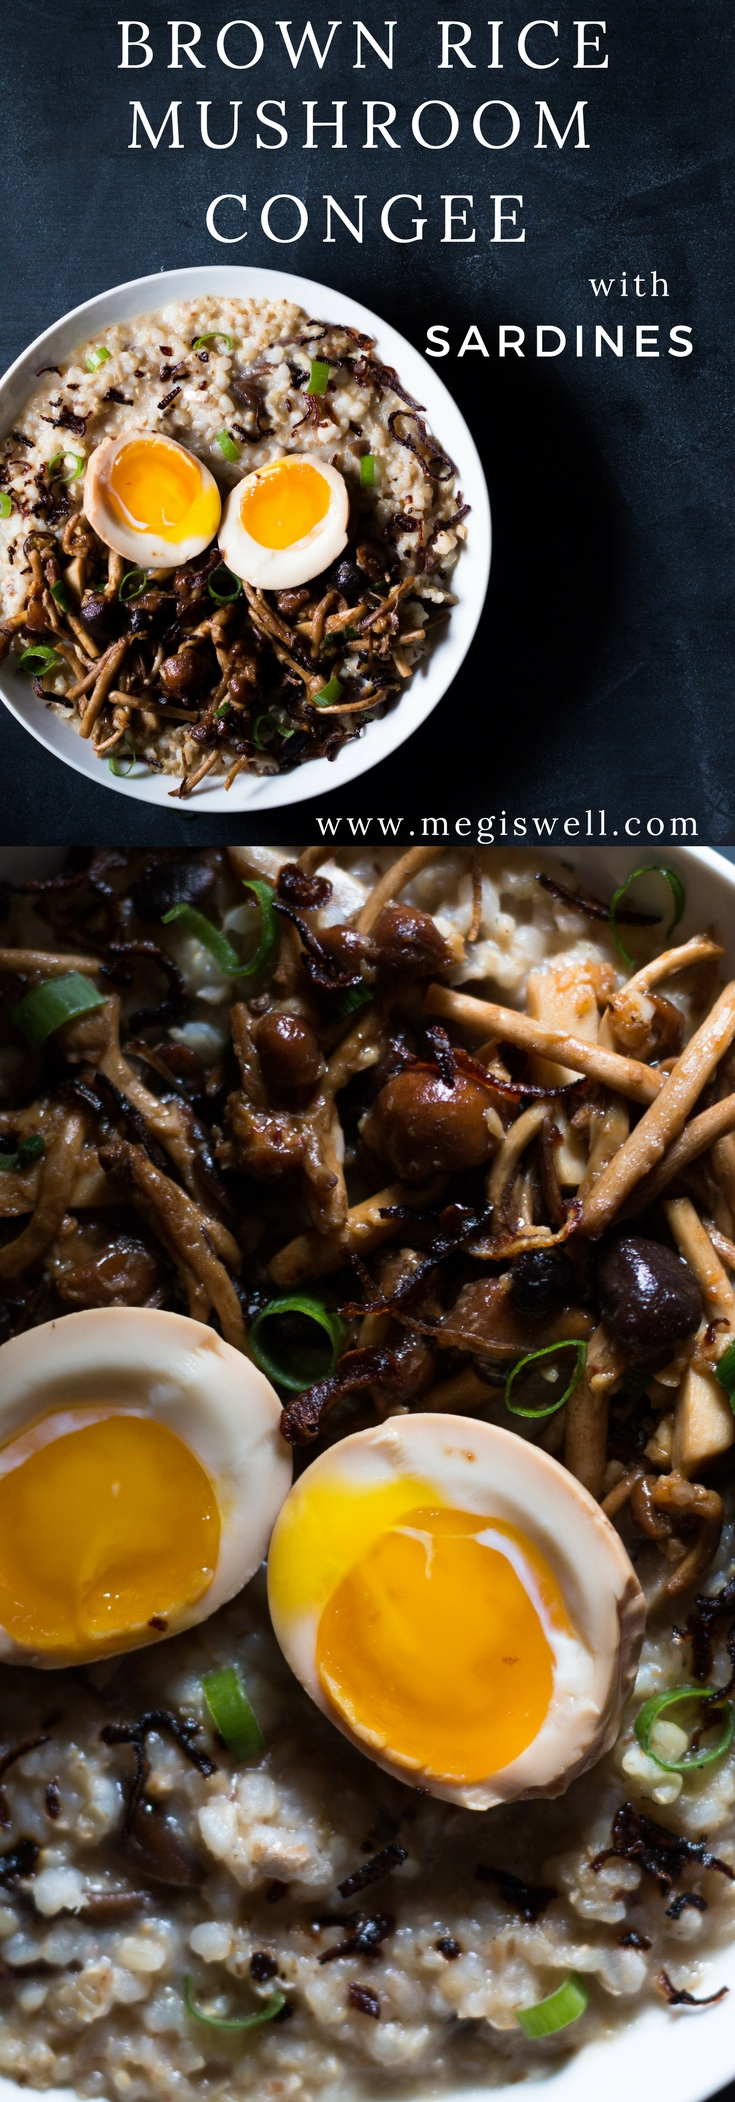 Brown Rice Mushroom Congee with Sardines | Topped with stir-fried mushrooms, a soft-boiled egg, and fried shallots, this is the ultimate savory breakfast that also works for lunch or dinner. #porridge #congee #healthy #breakfast #sardines #mushrooms | www.megiswell.com